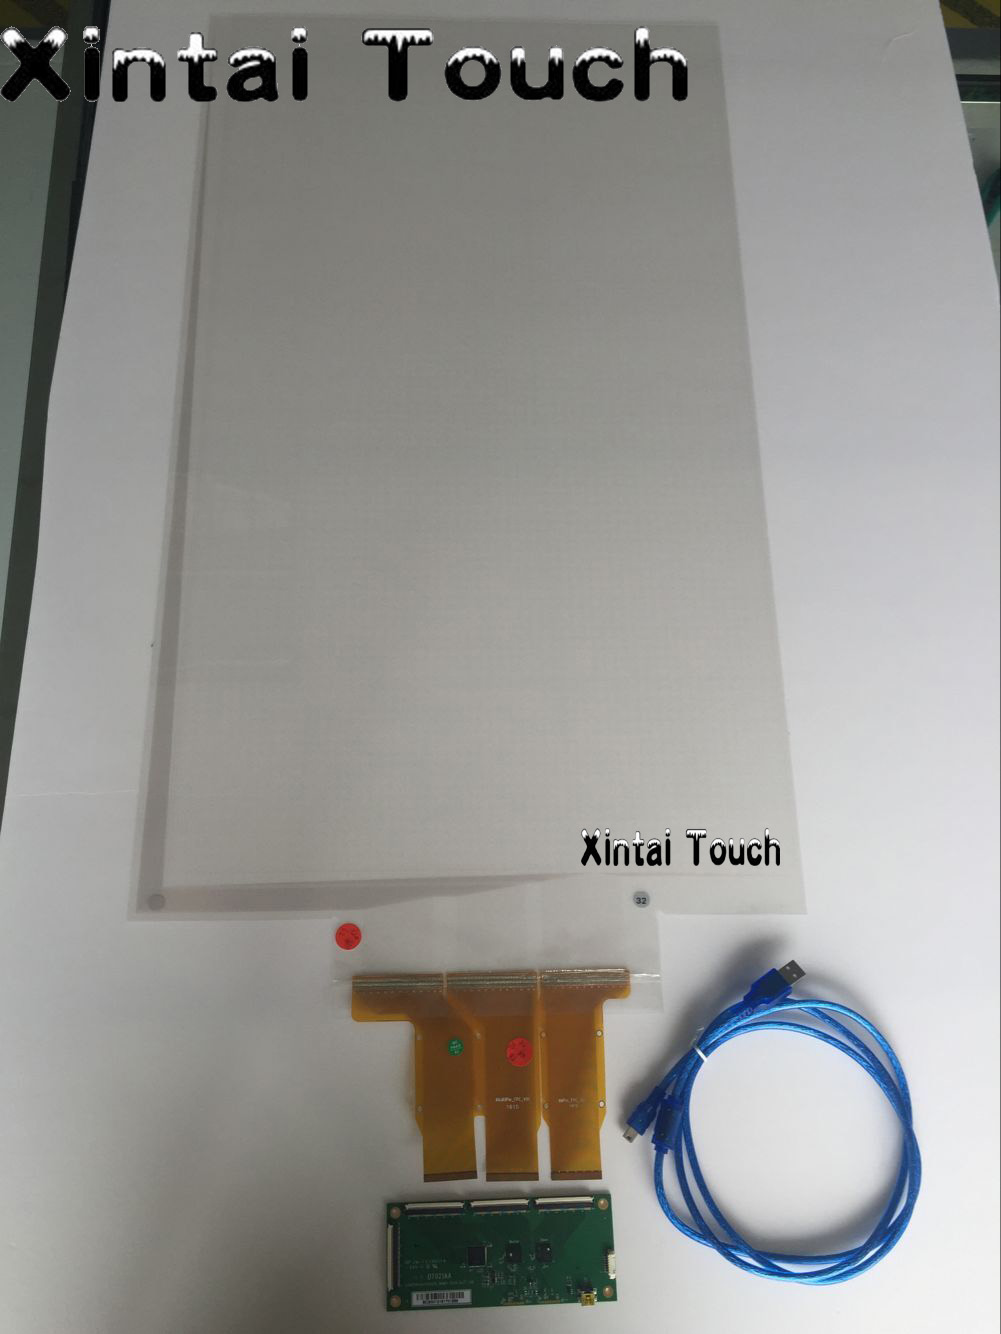 65 Transparent capacitive multi touch film 16:9 format work for kiosk, display, lcd etc